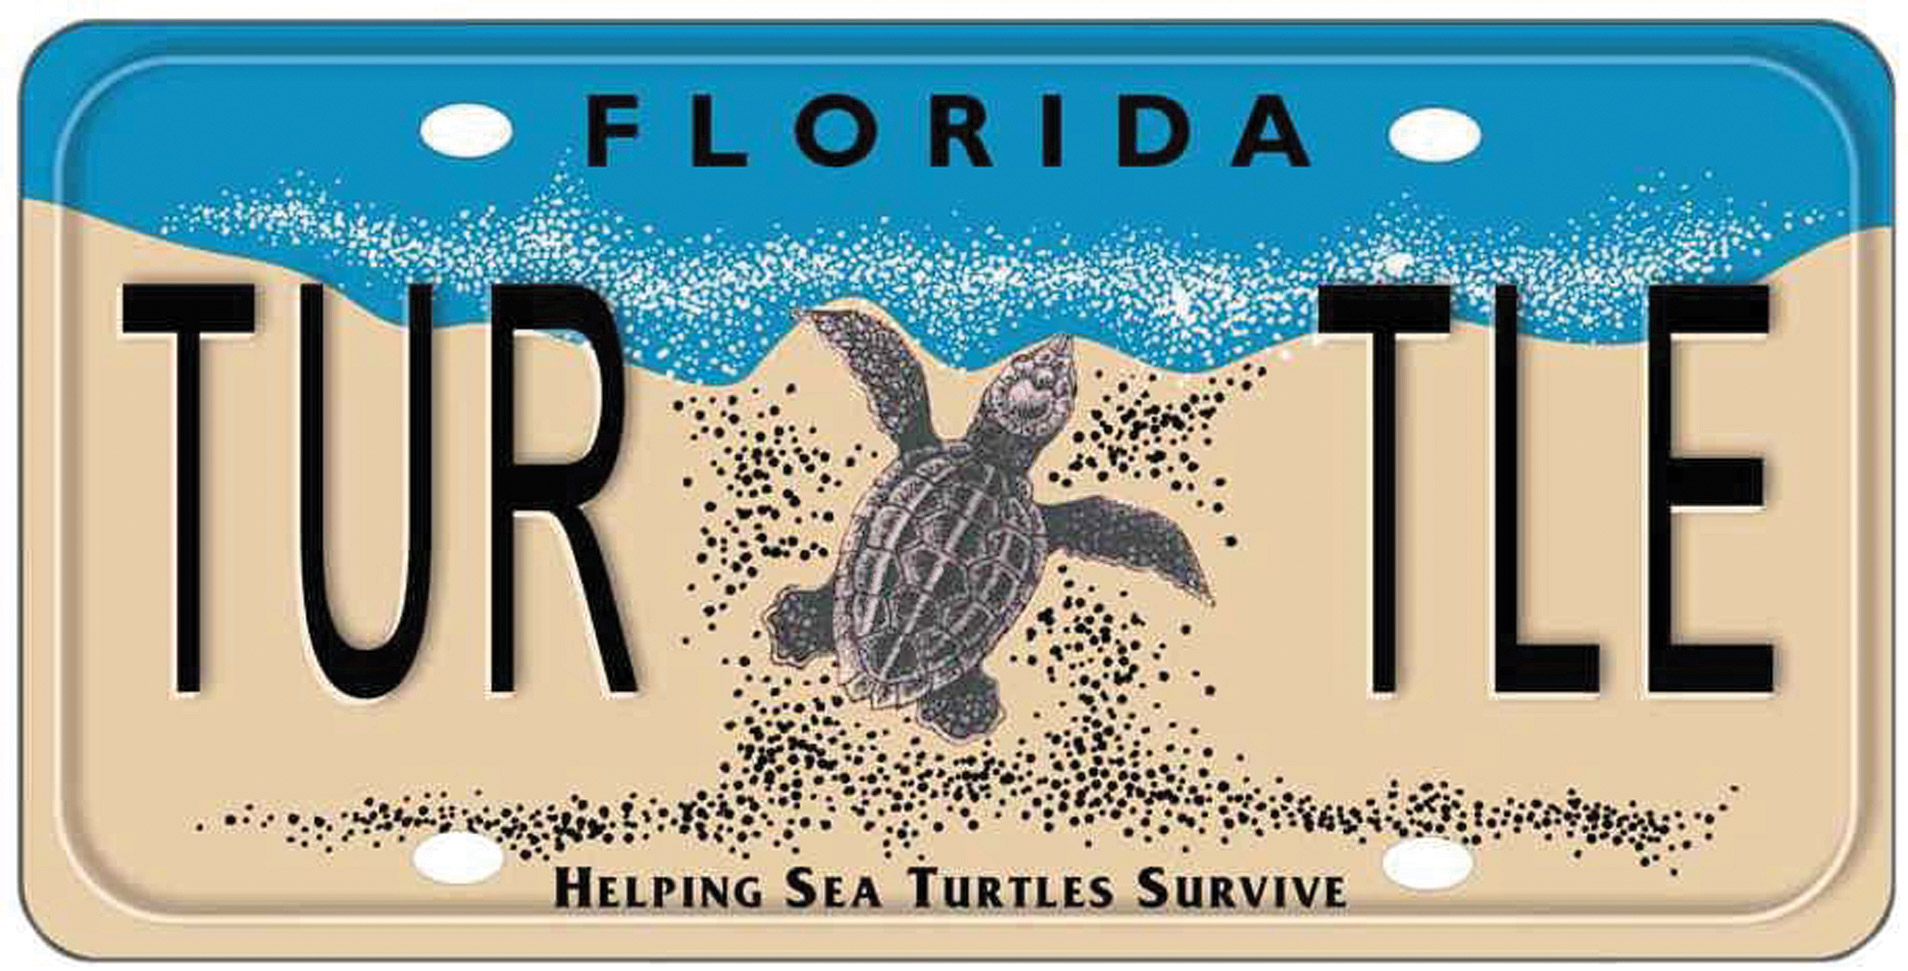 Sales of sea turtle specialty license plates, such as this one from Florida, U.S.A., are one creative way to generate funding for conservation programs.